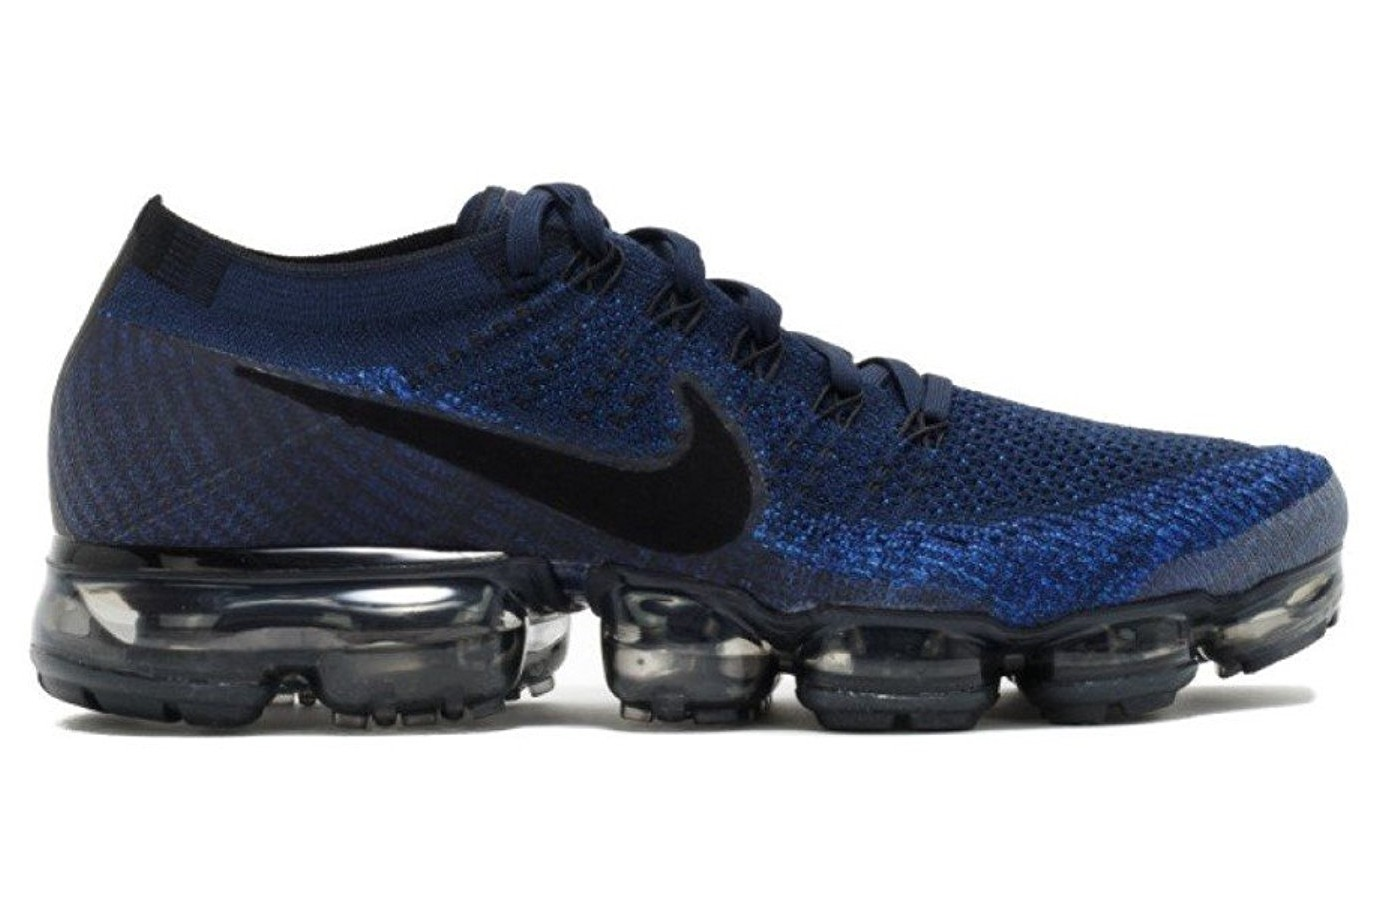 07cf4b684a3e8 Nike Air Vapormax Flyknit Reviewed for Performance in 2019